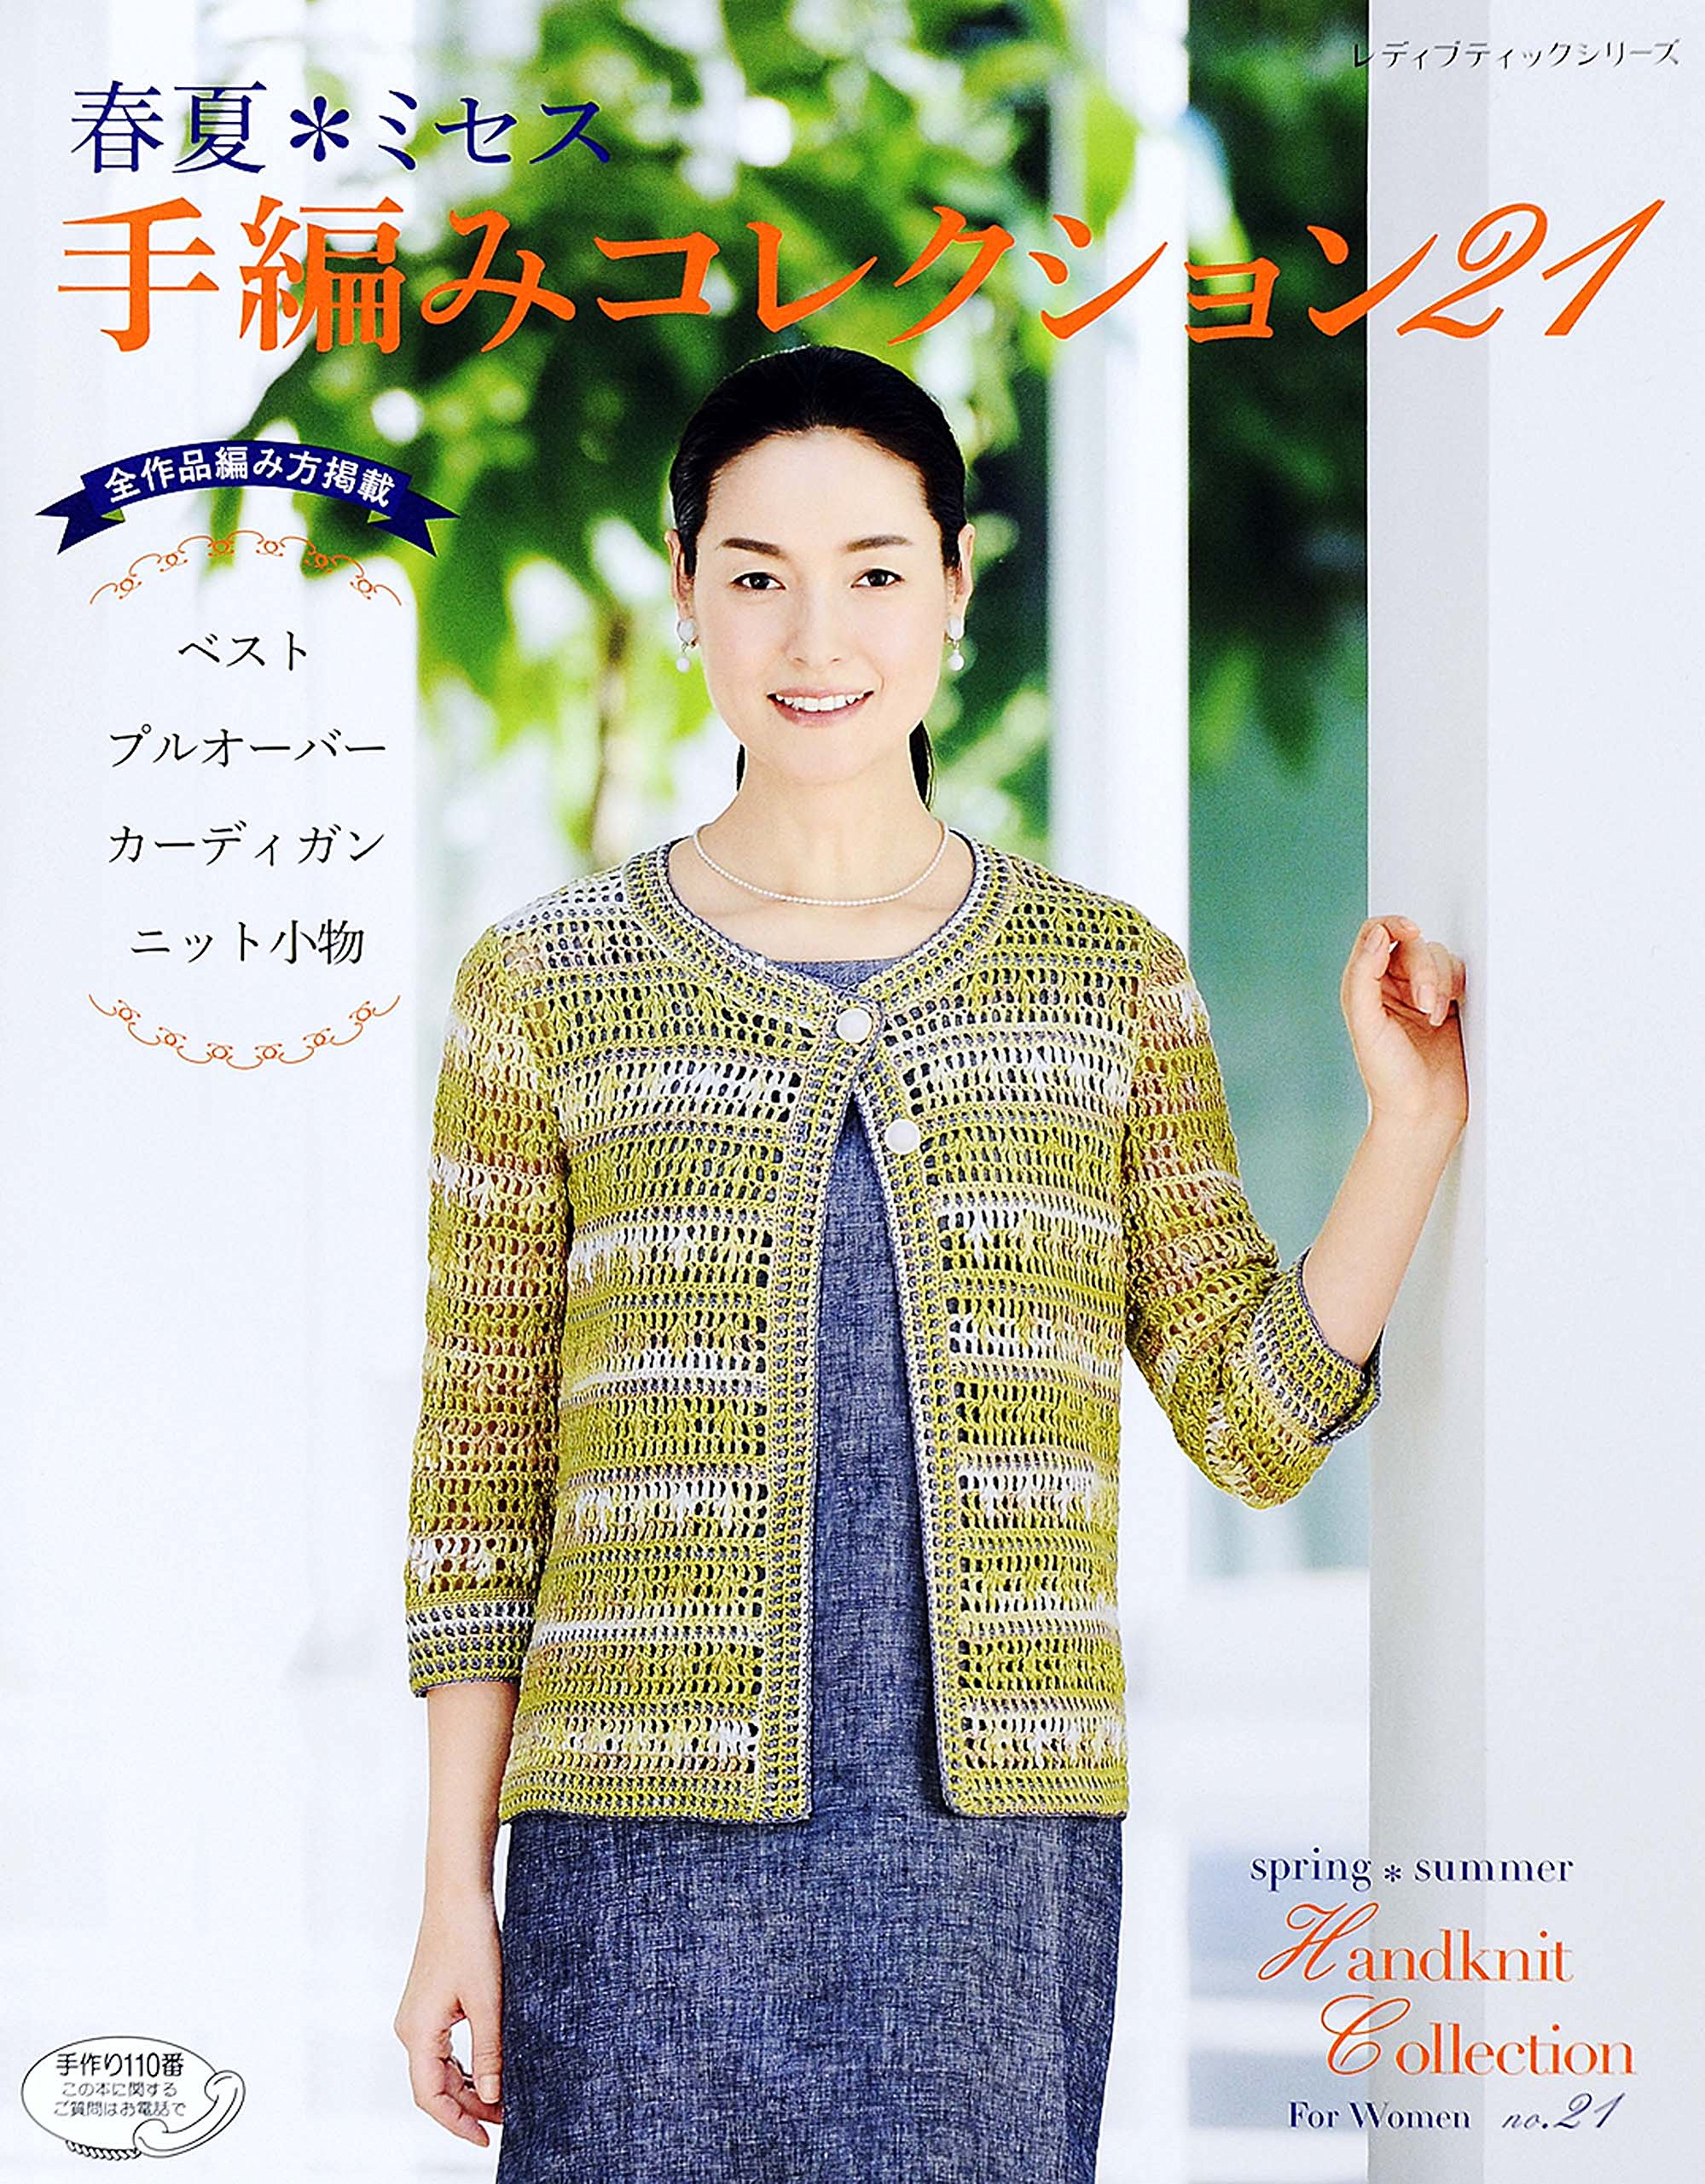 Spring-summer * Mrs. hand-knit collection 21